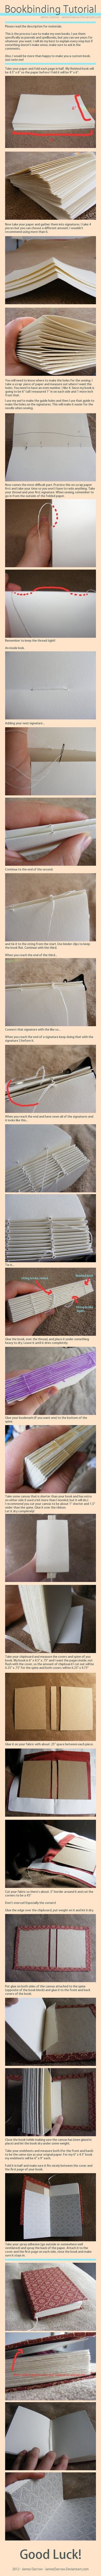 build your own book #diy